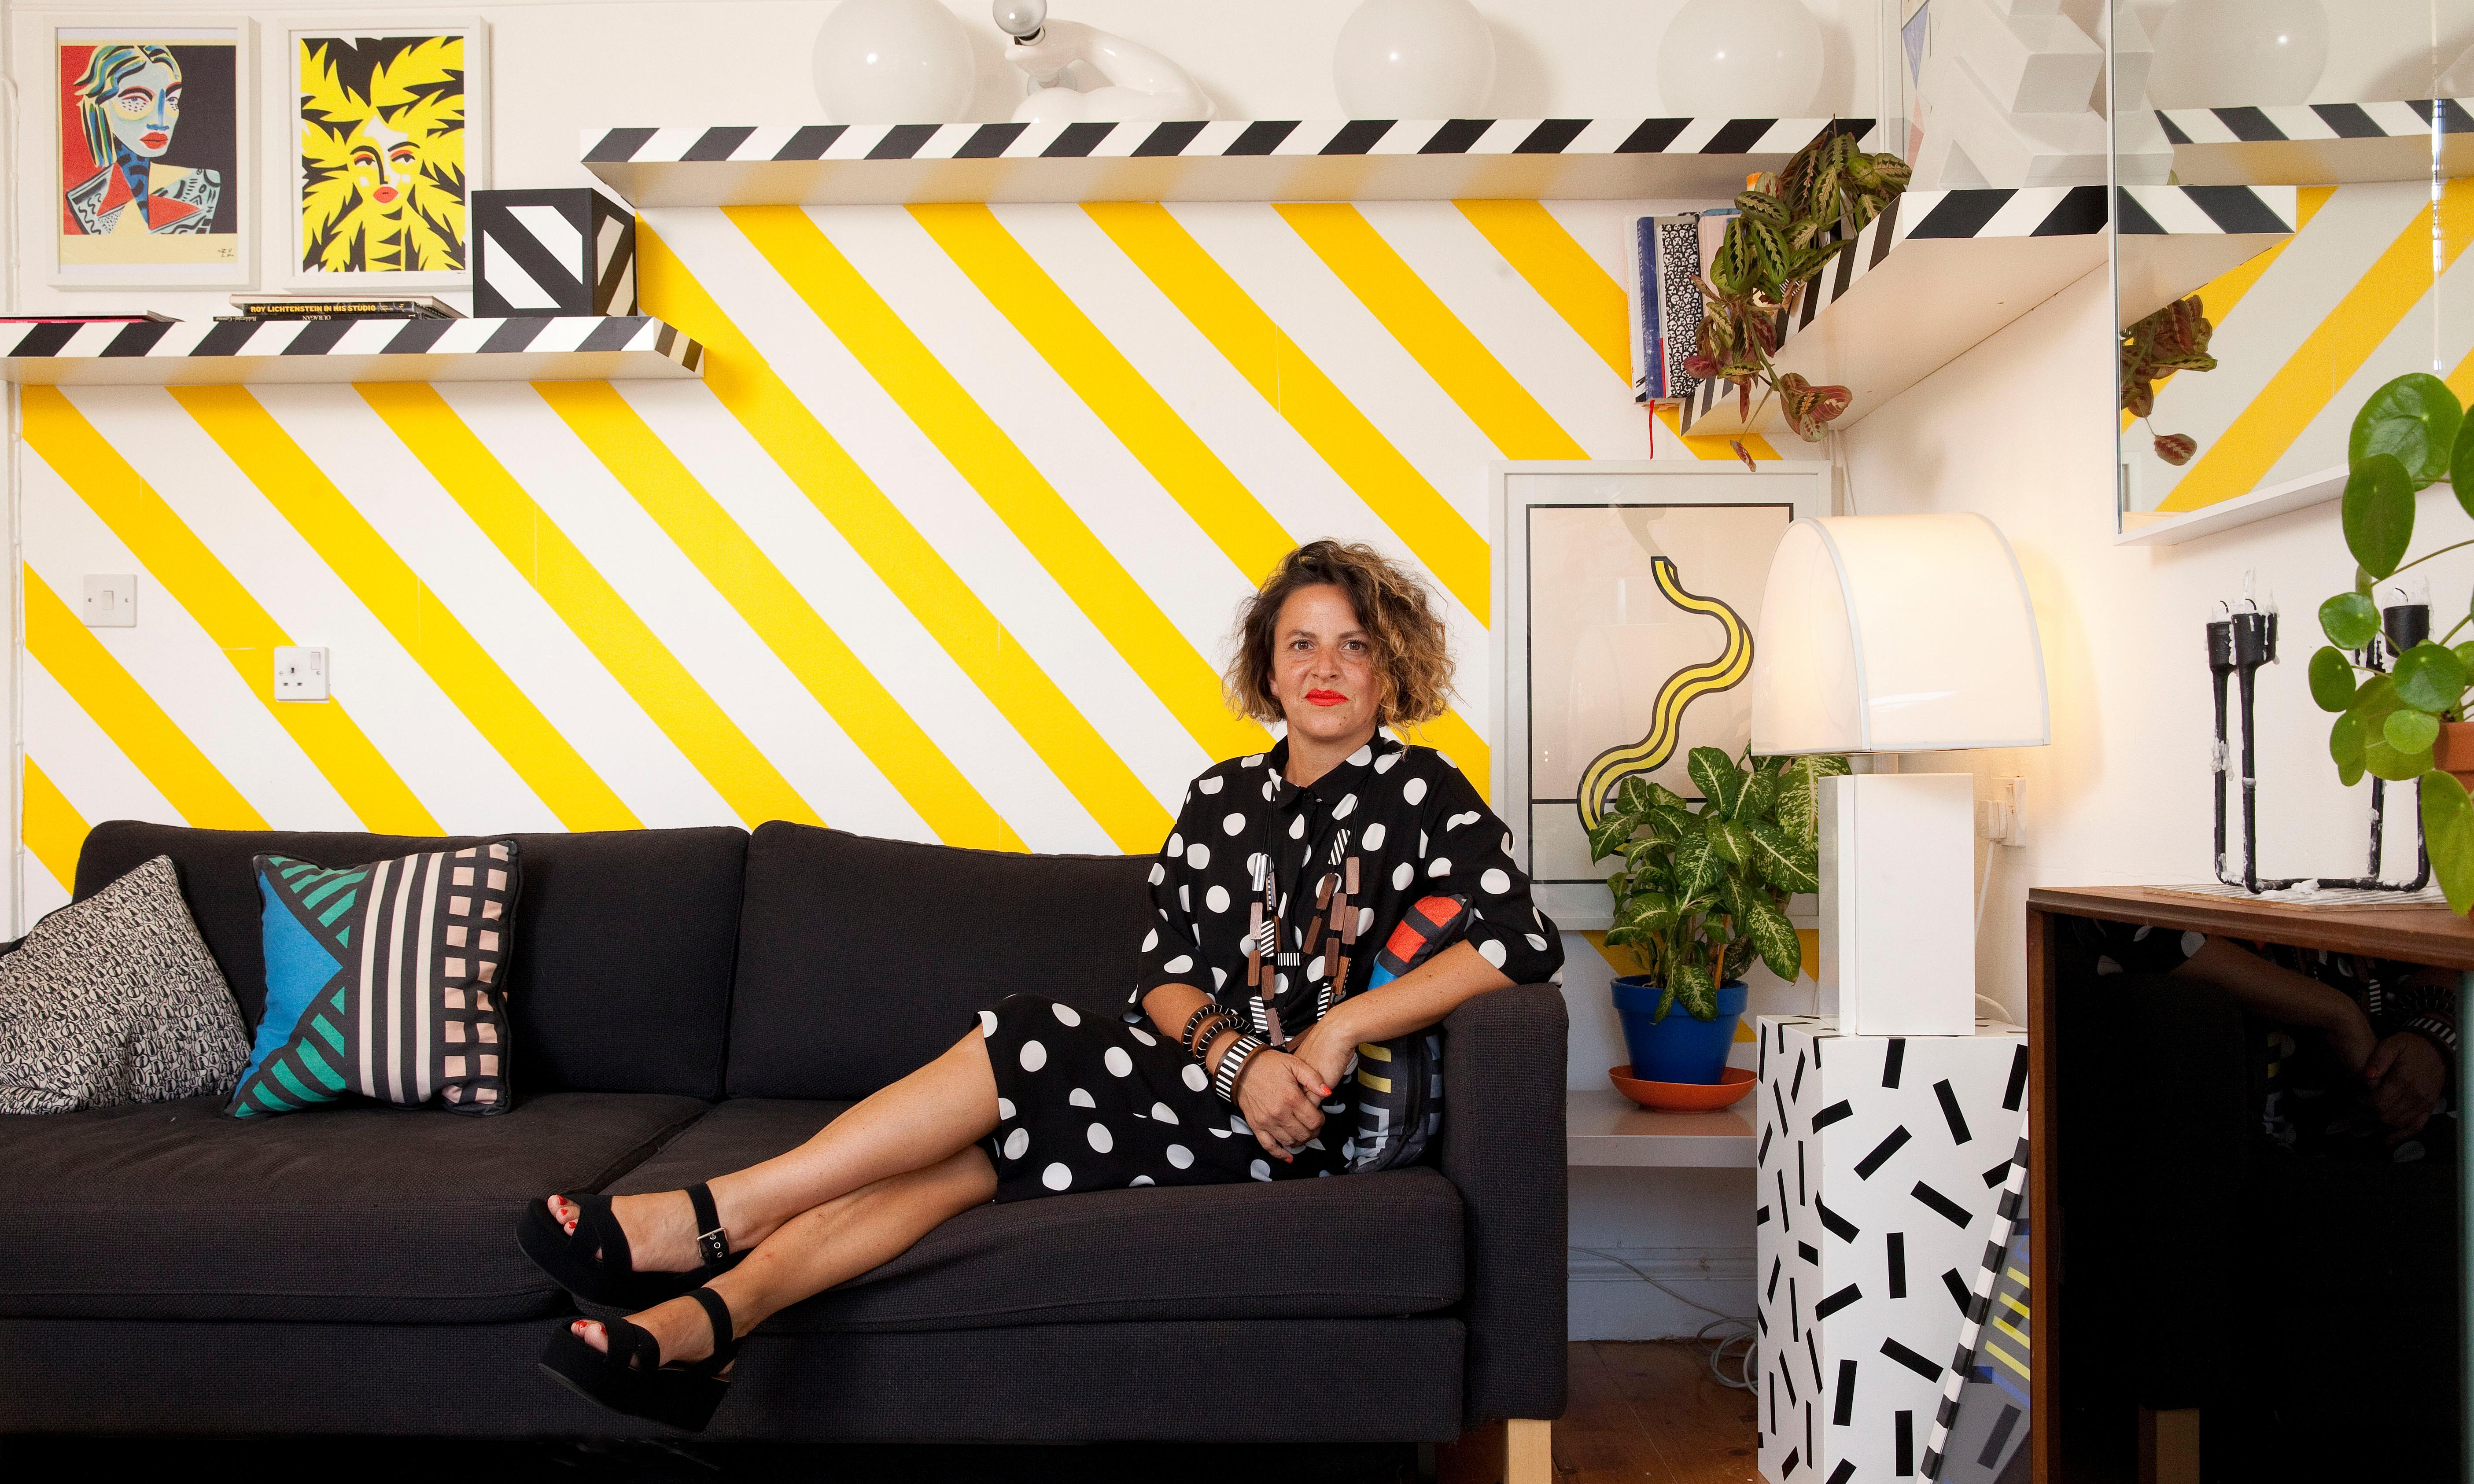 On my radar: Camille Walala's cultural highlights